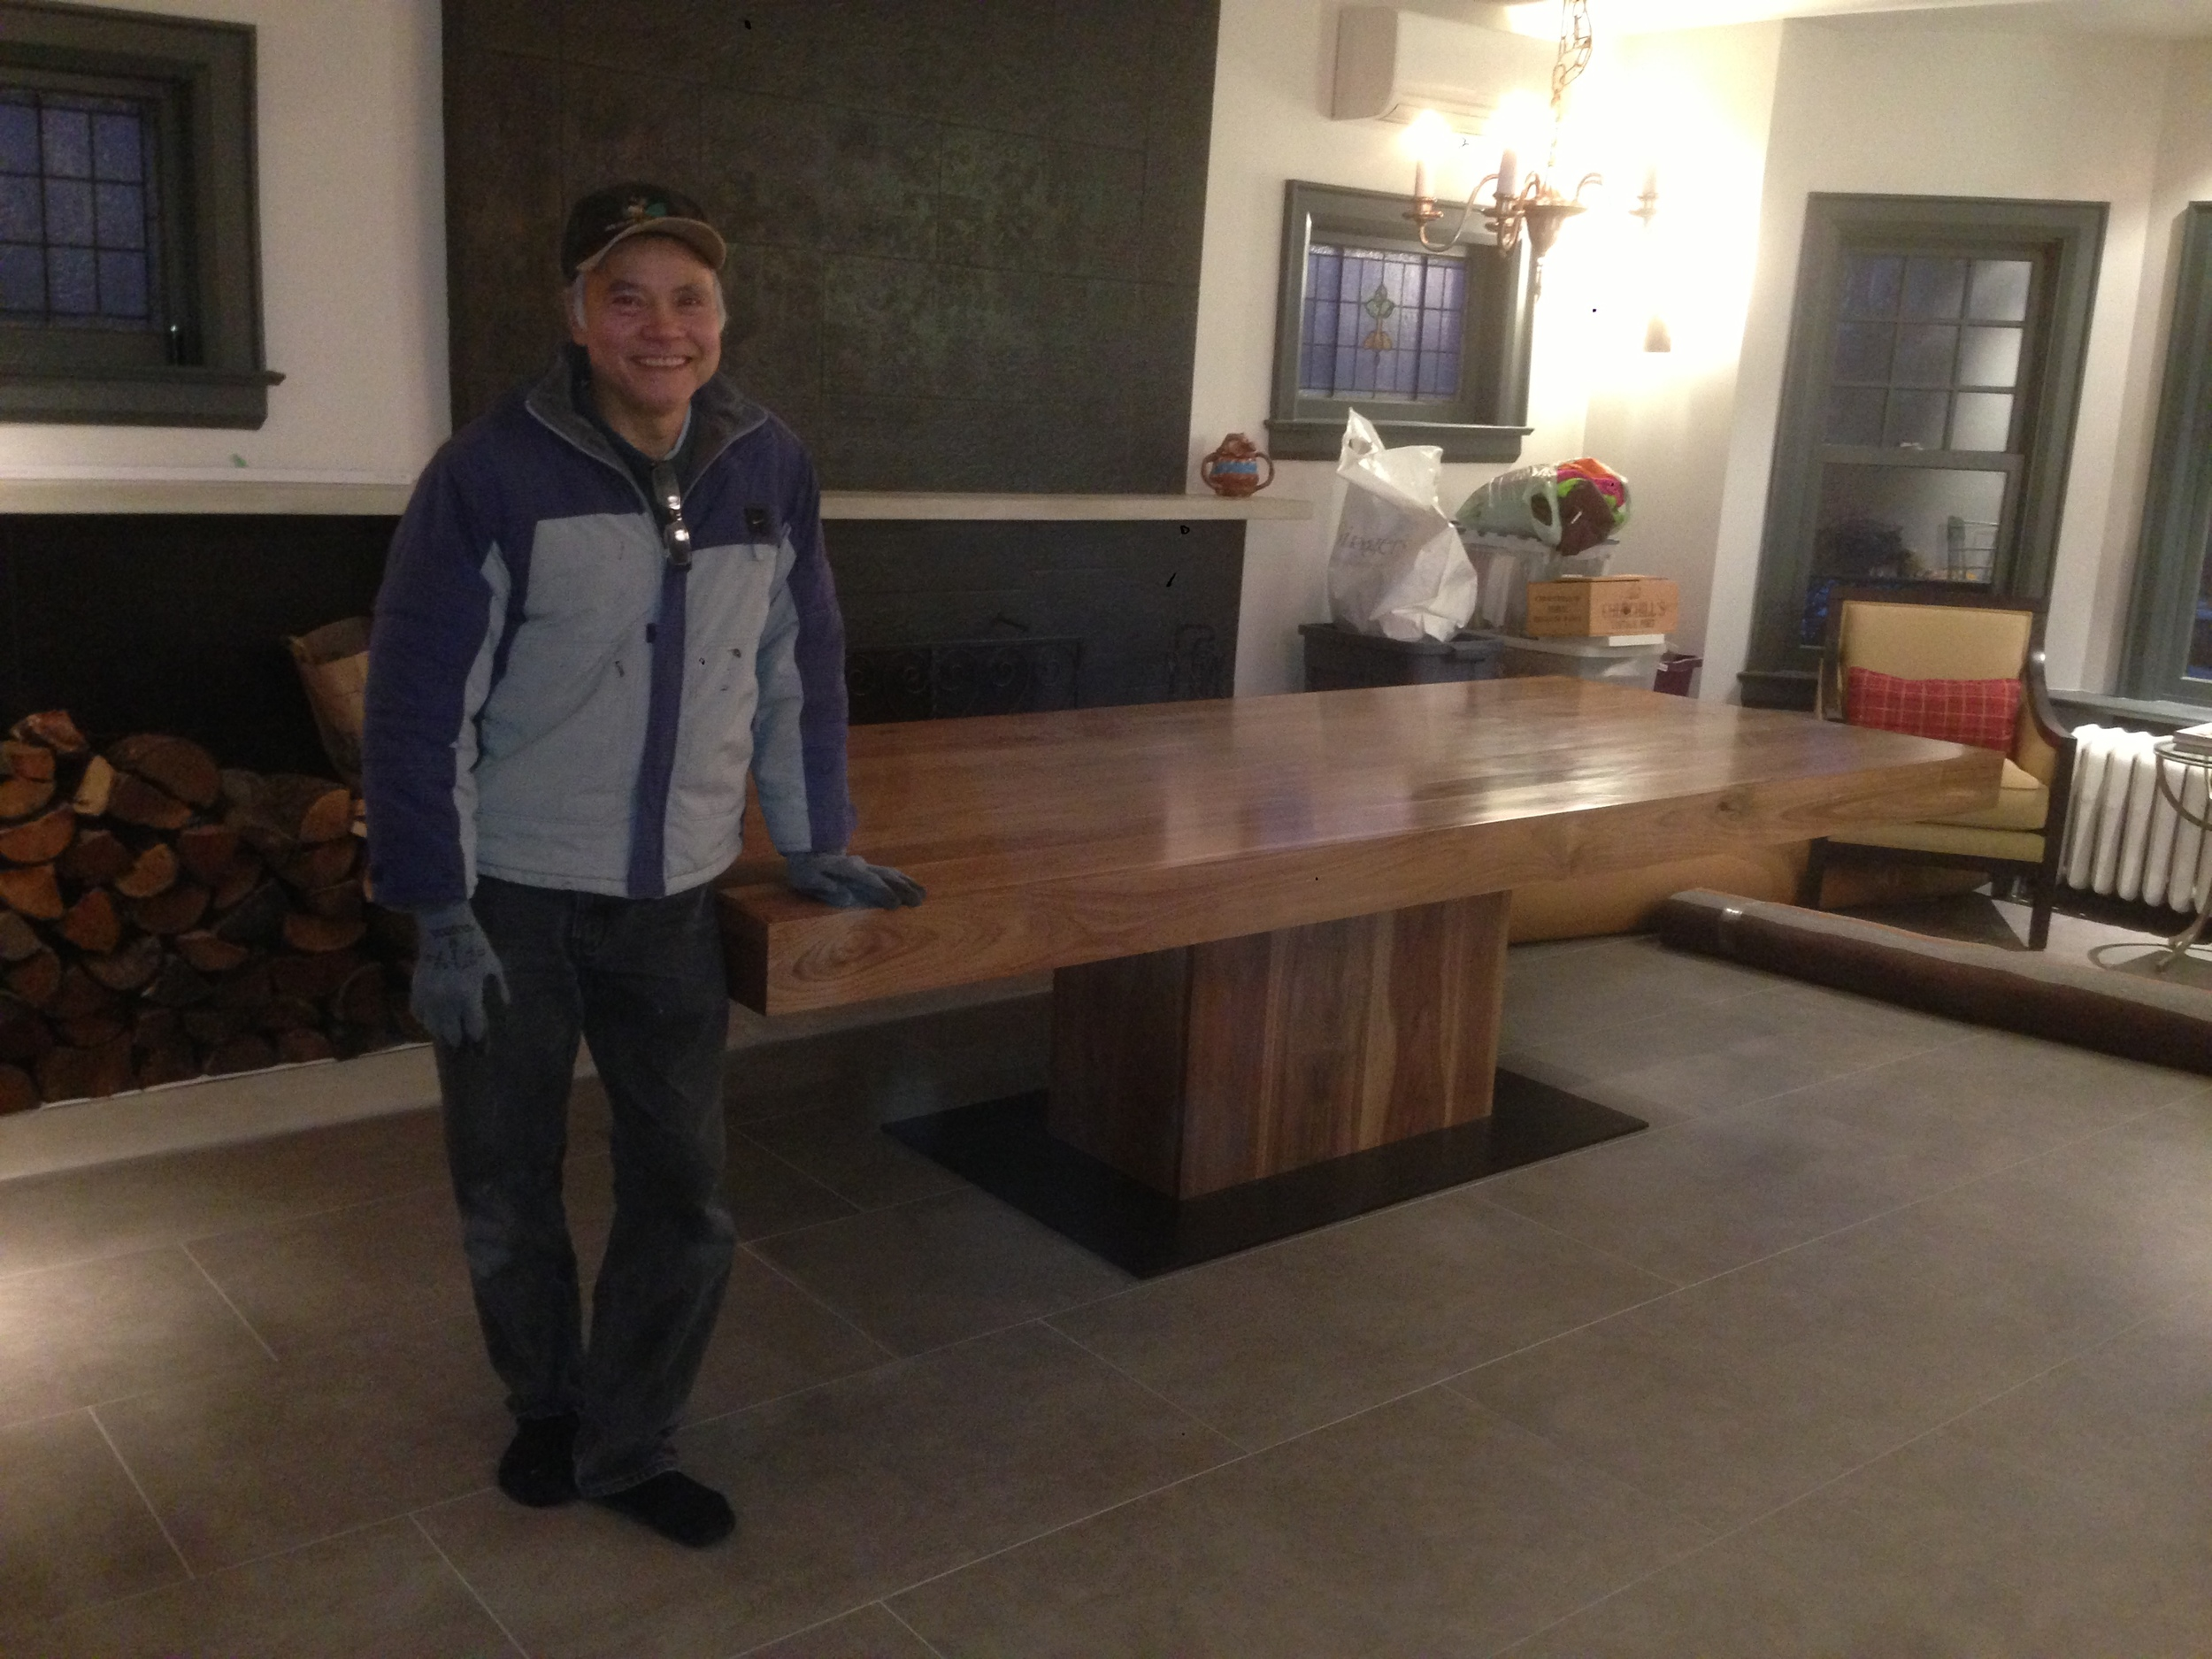 My father in-law standing proud since he and Rock built this table together!  Rock has to step aside and share the fame.